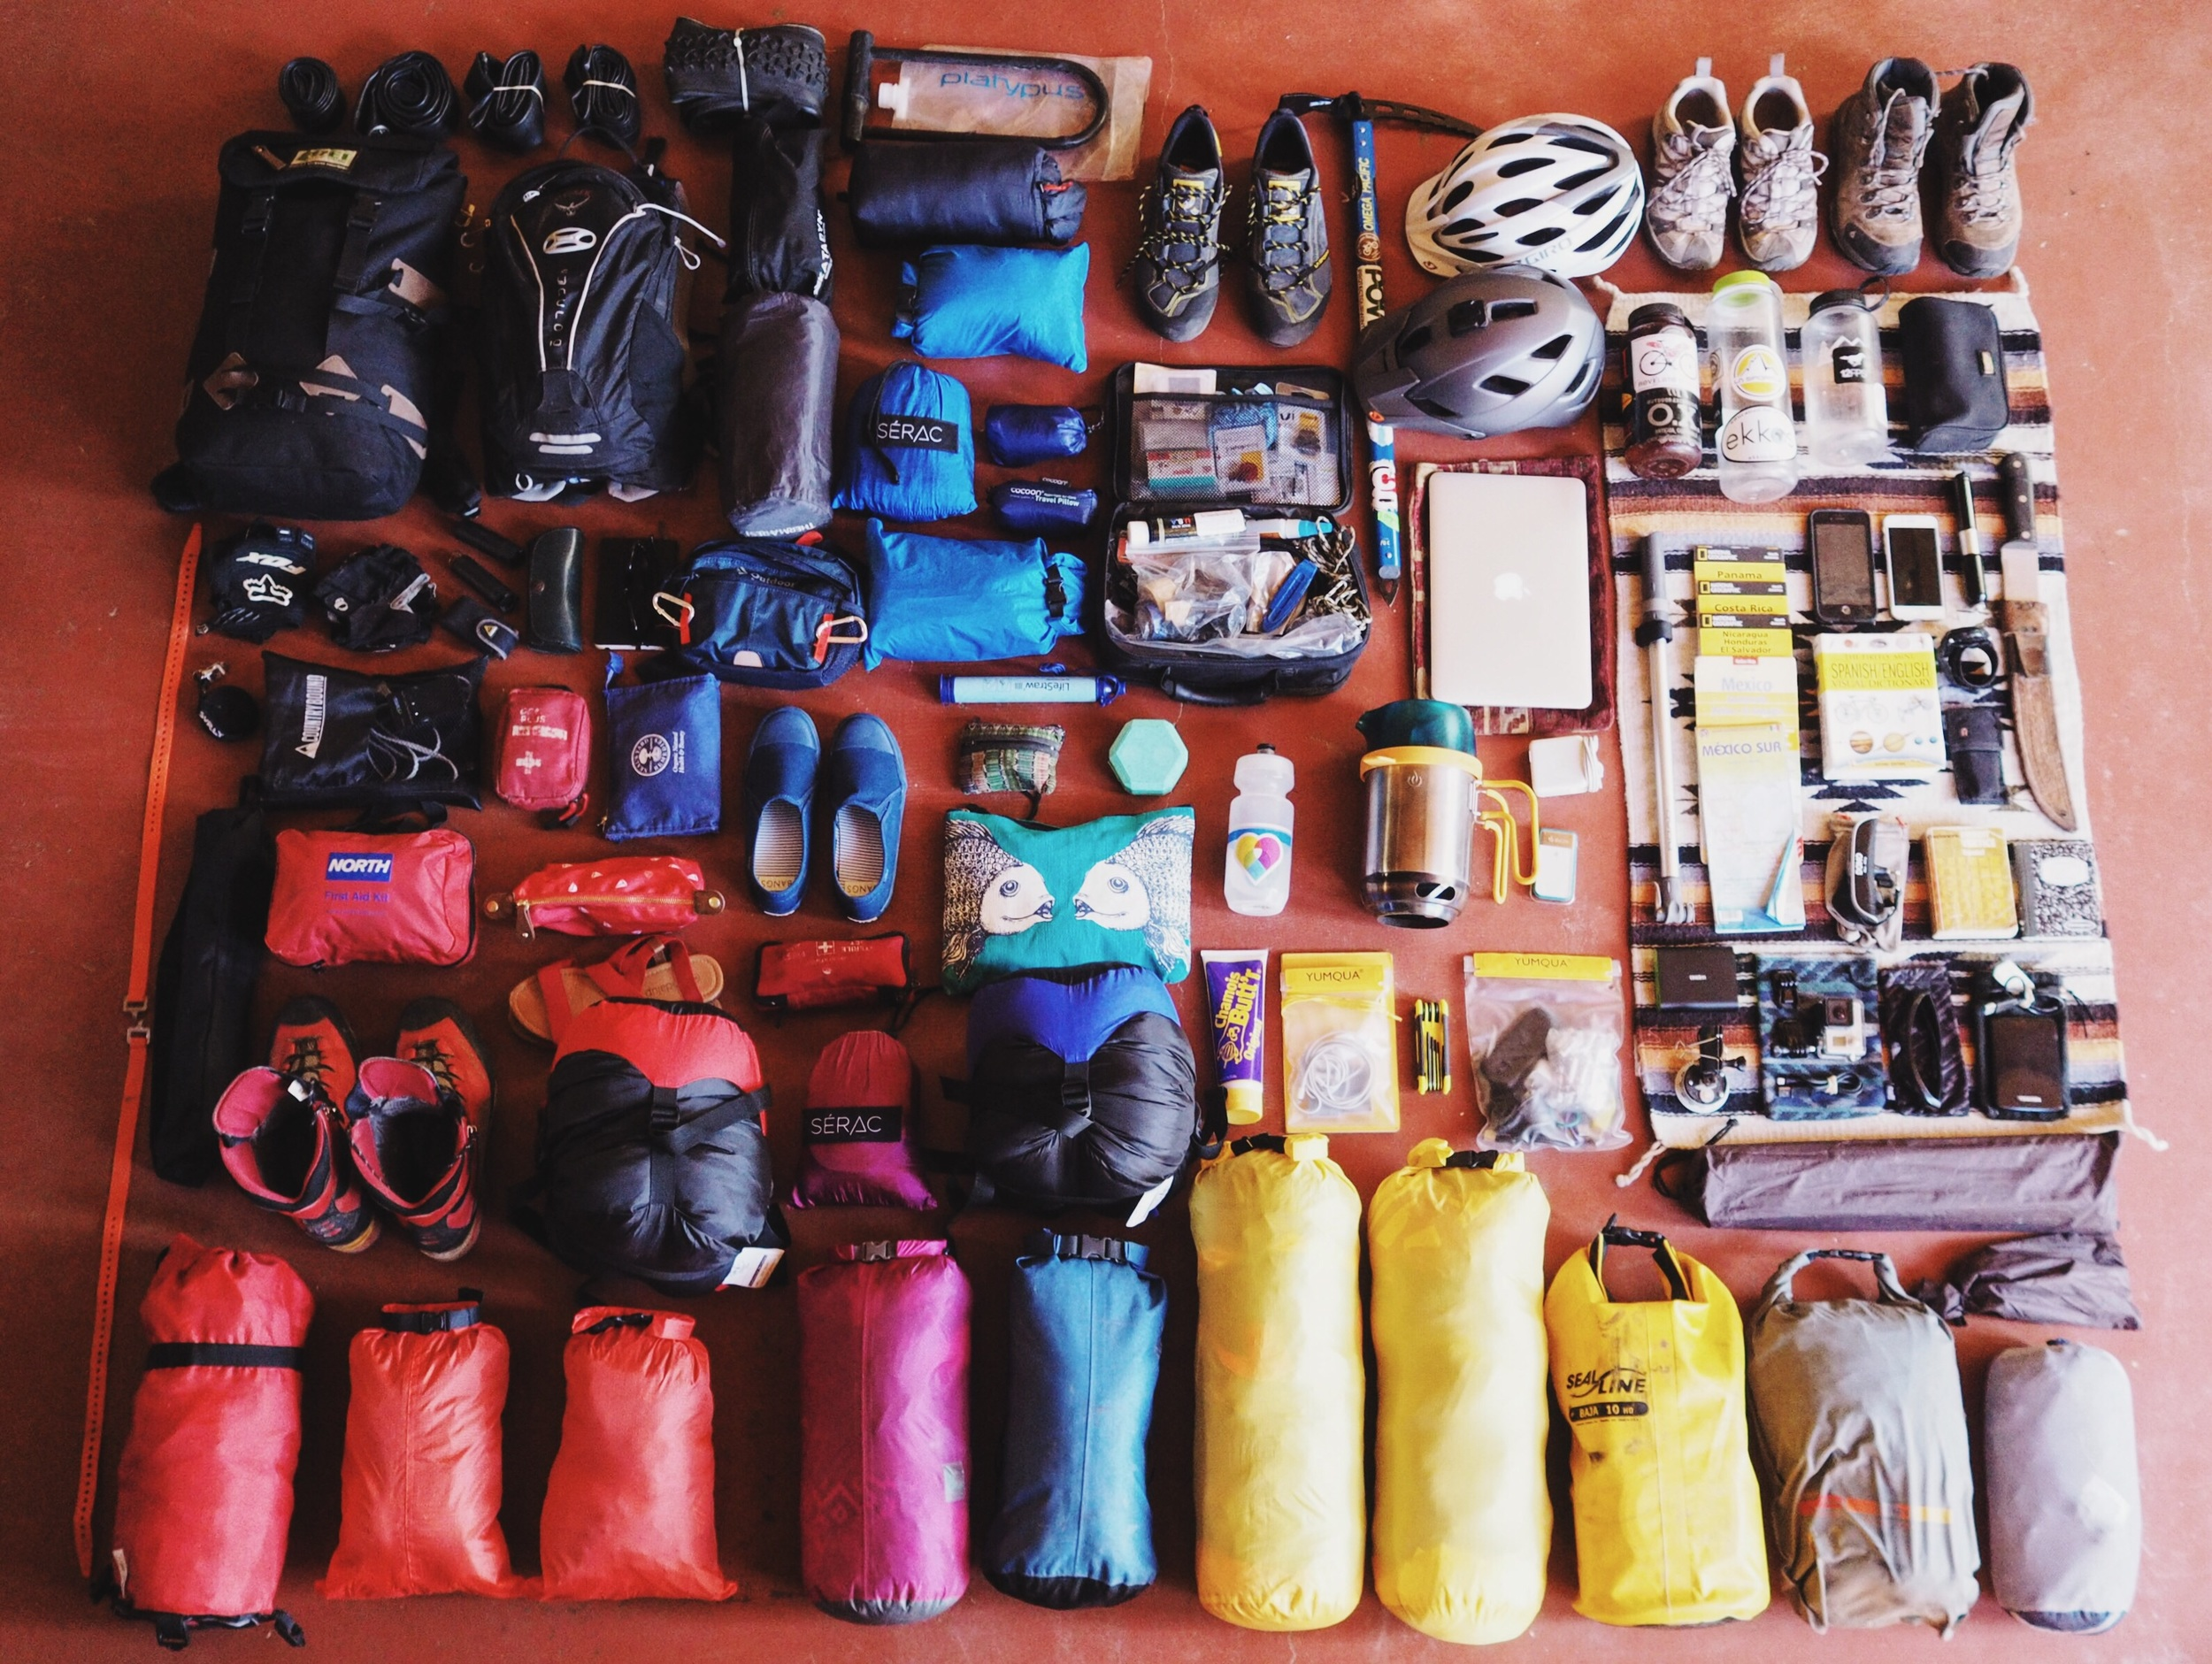 Huge thanks to The Broken Spoke in Santa Fe for all the gear, advice & support!